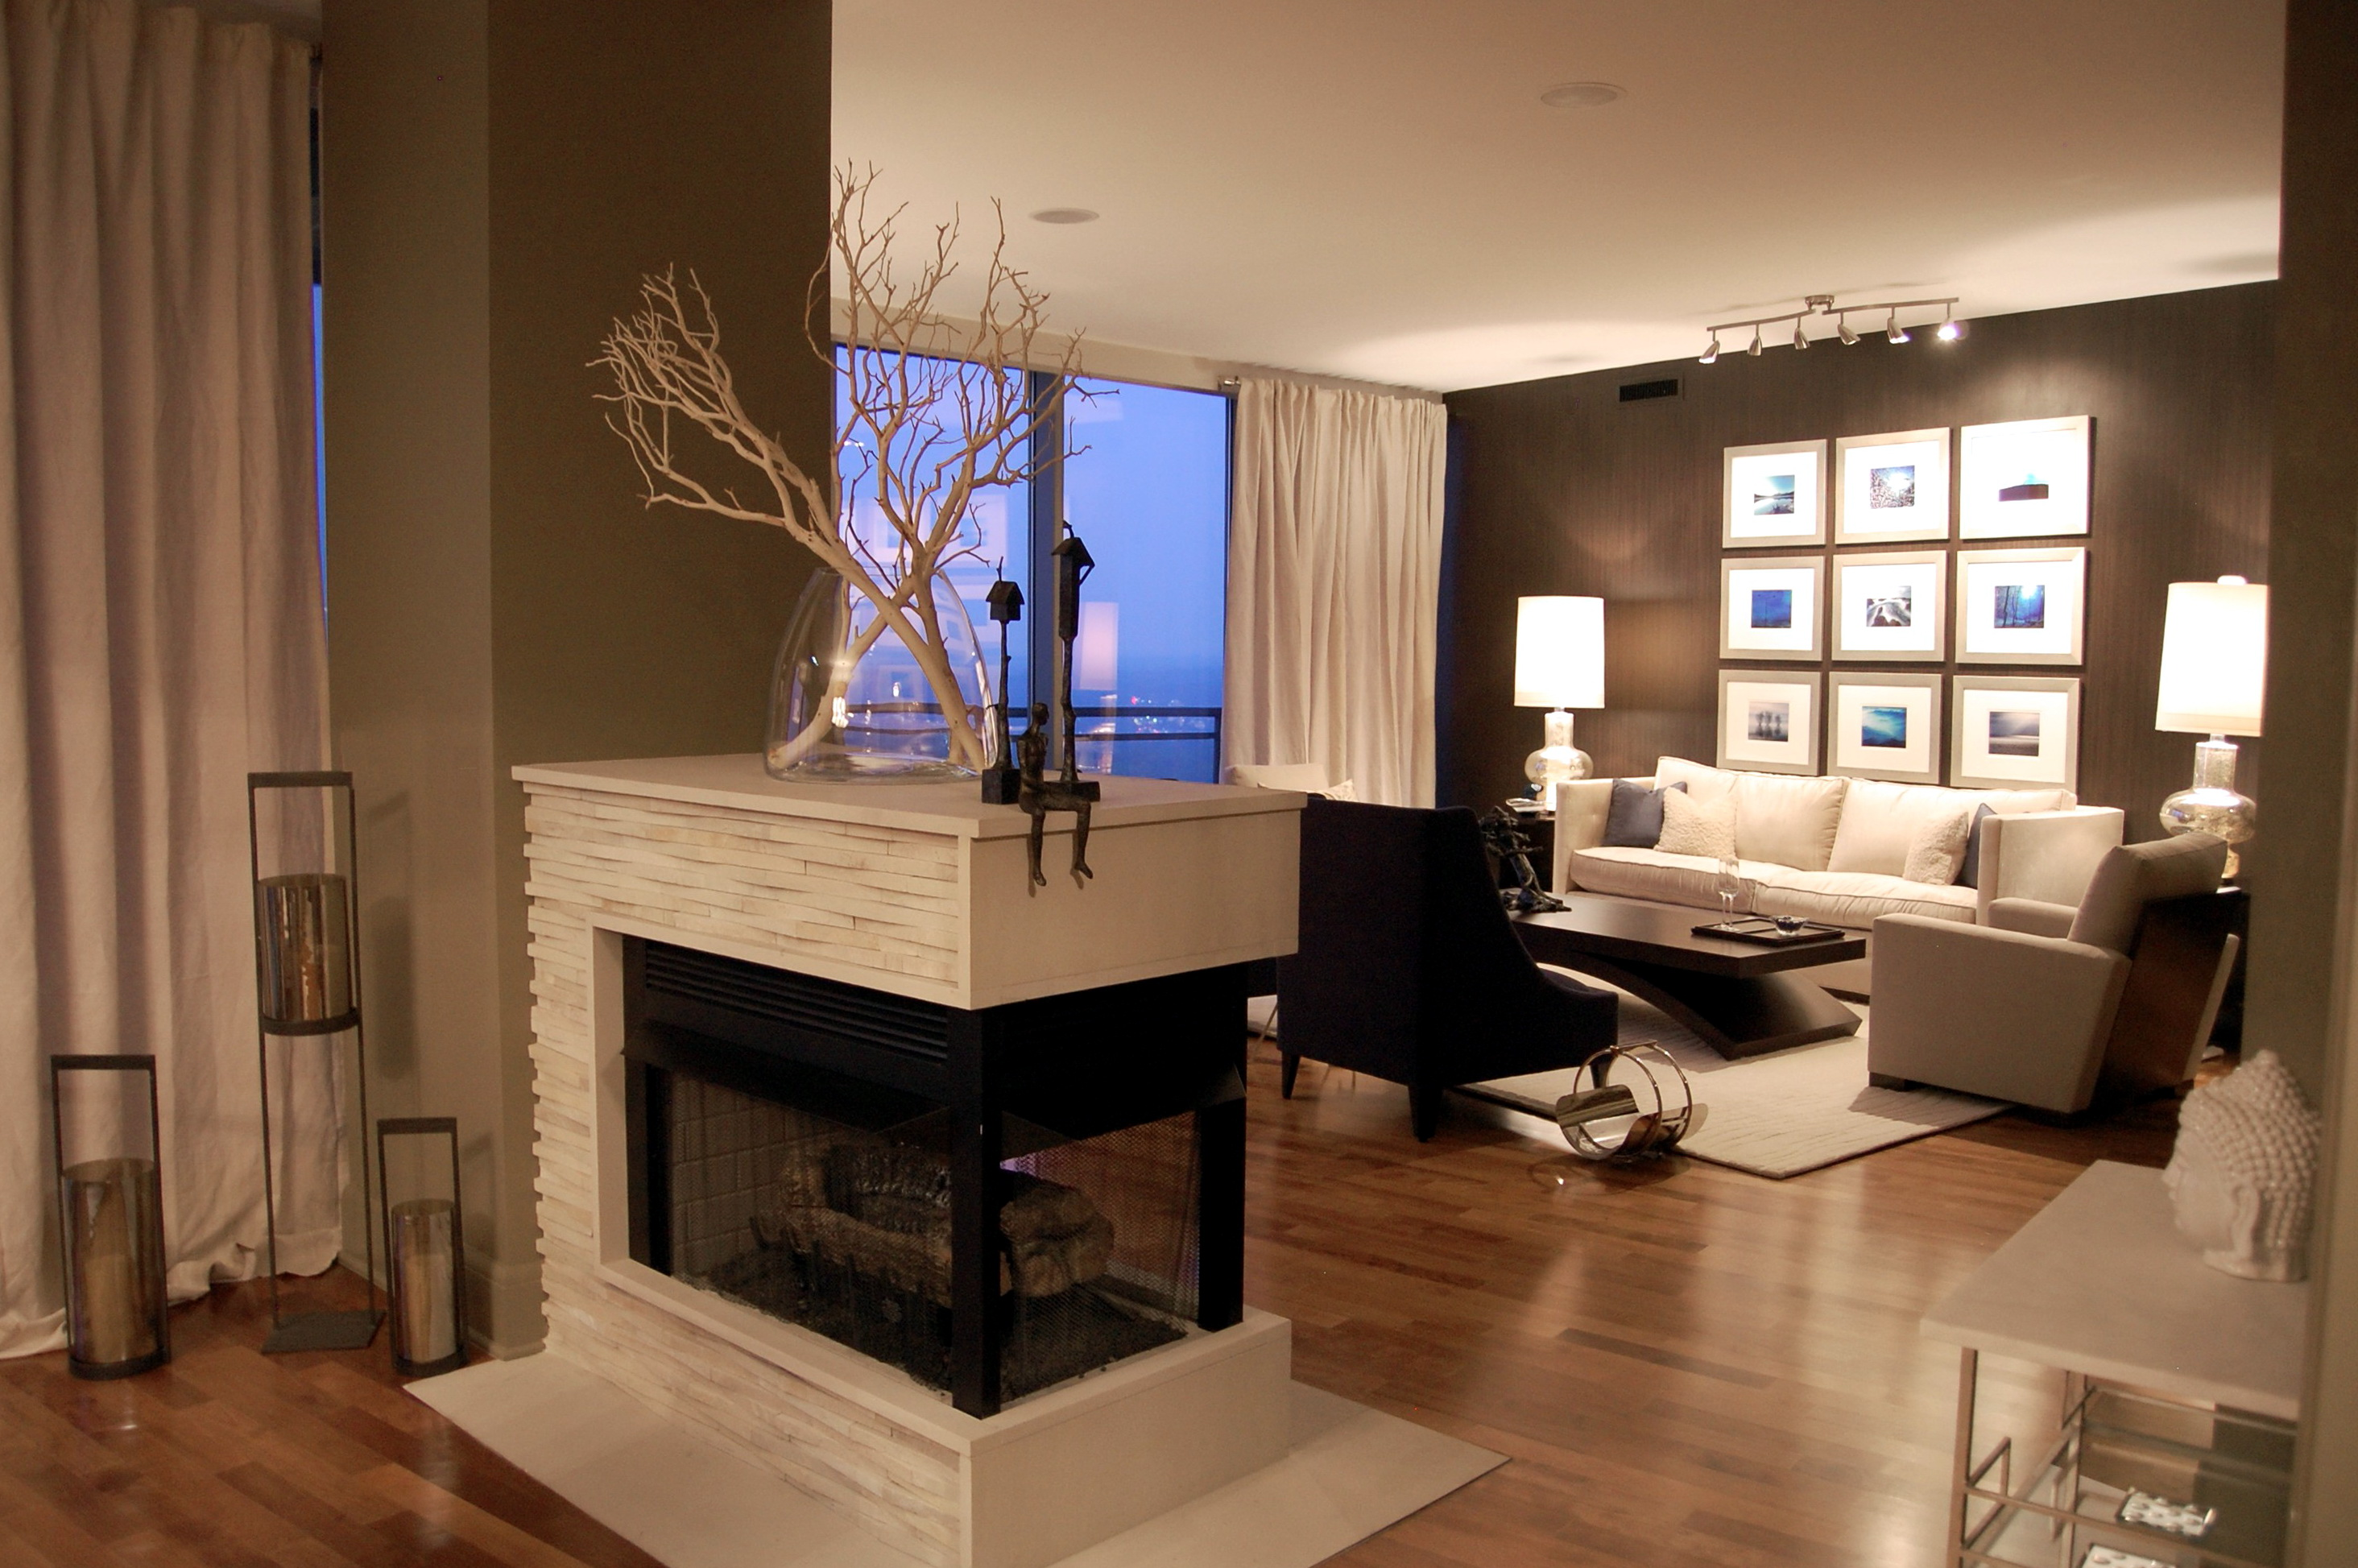 peninsula sb ascent fireplace embers view outdoor napoleon categories sided living acsent multi gas fireplaces